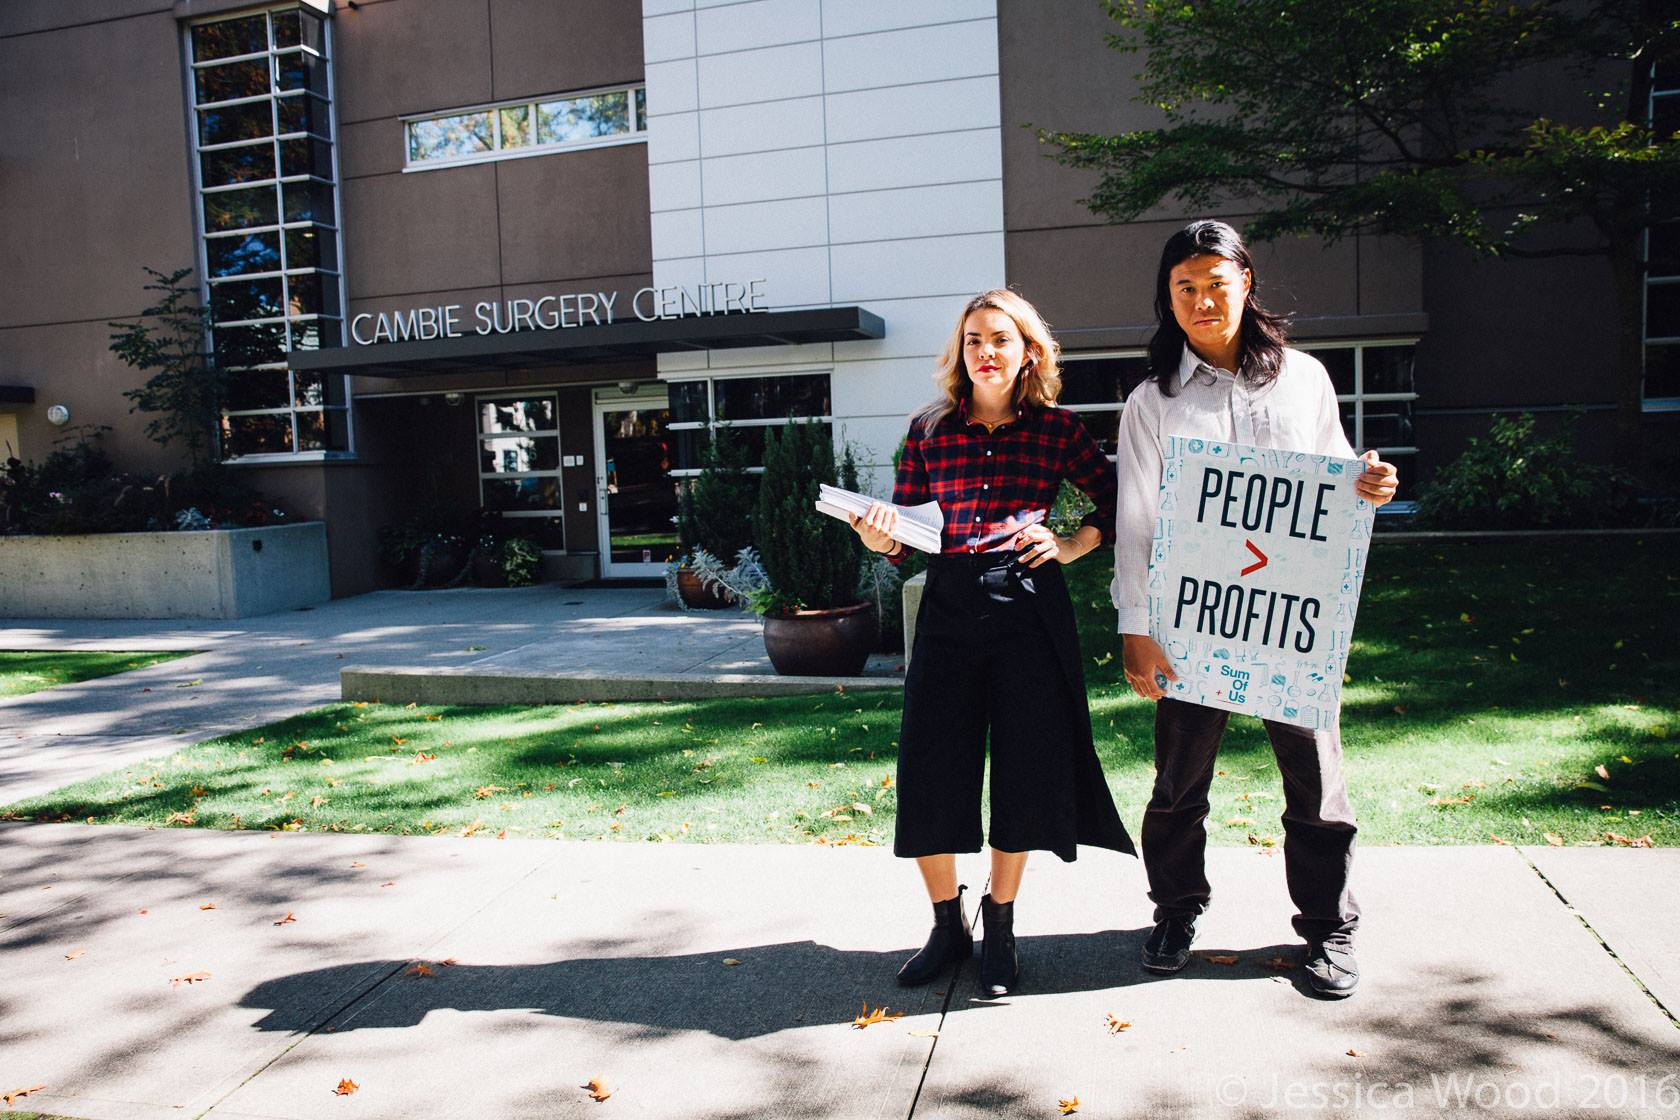 Petition Delivery to Doctor Profits liar Cambie Surgeries Corporation